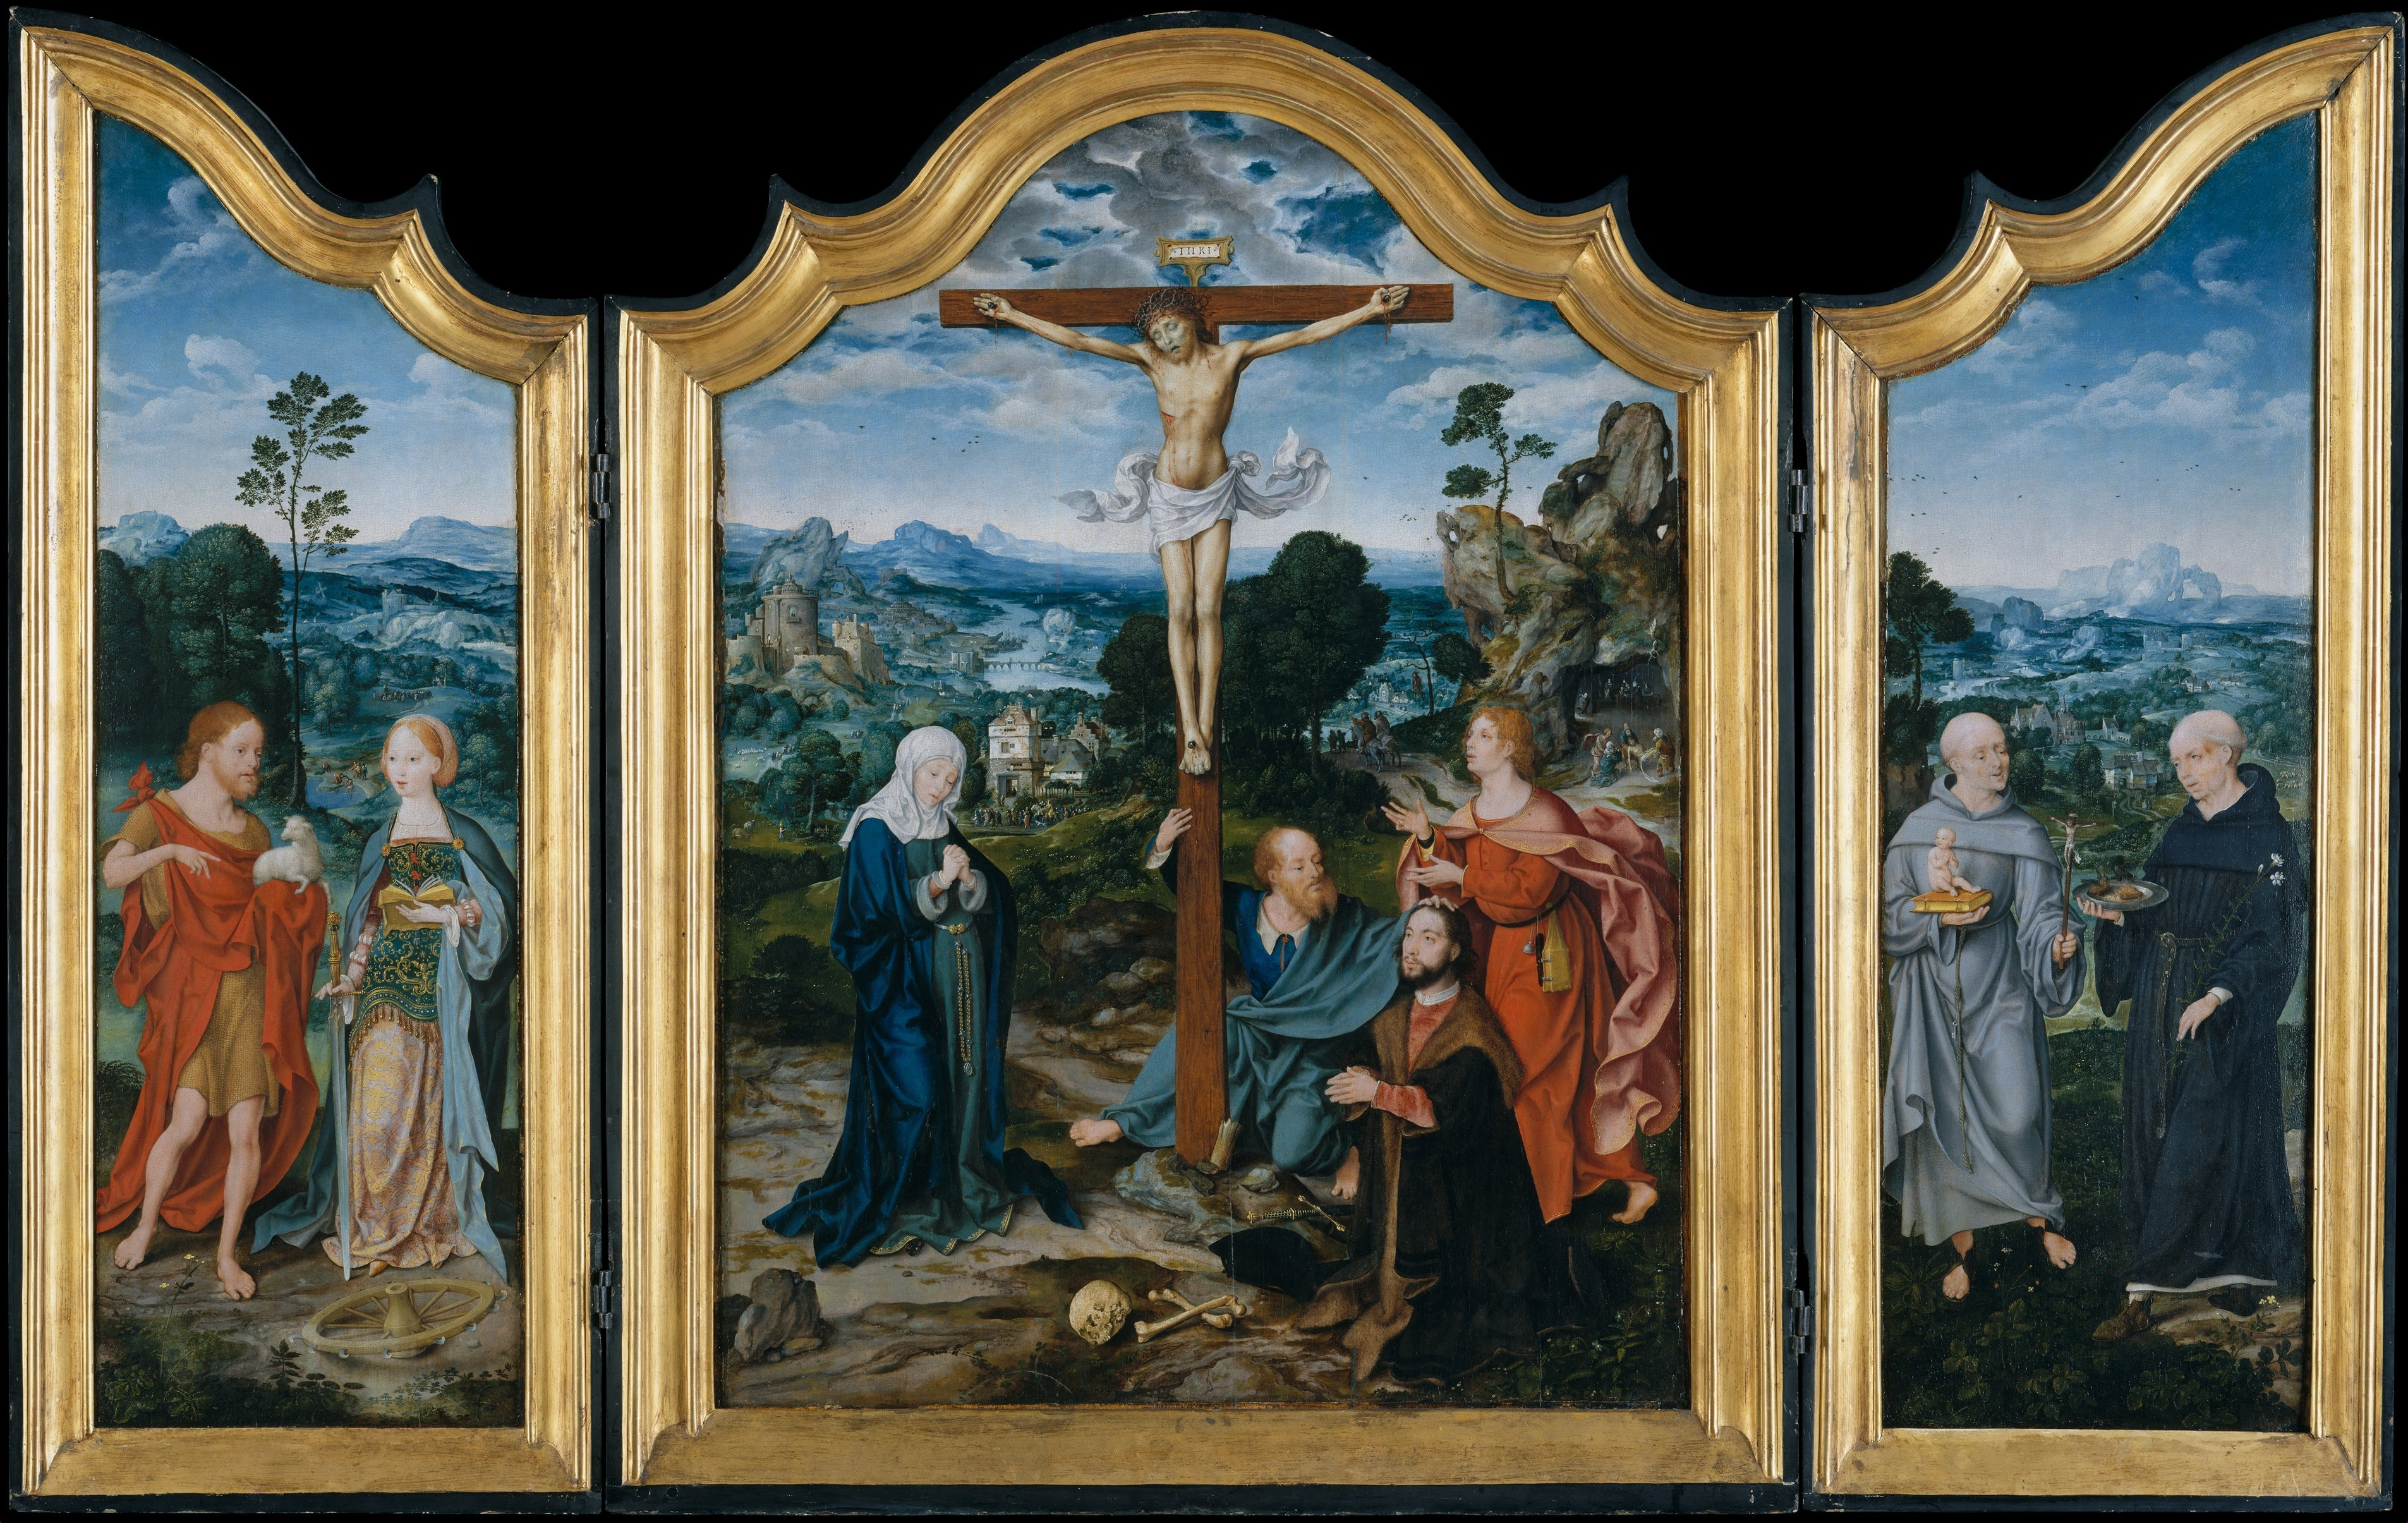 Triptych of the Crucifixion and saints and donators (about 1520) (central panel 98.4 x 74.3, side panels 101 x 32.7) (New York, Metropolitan)